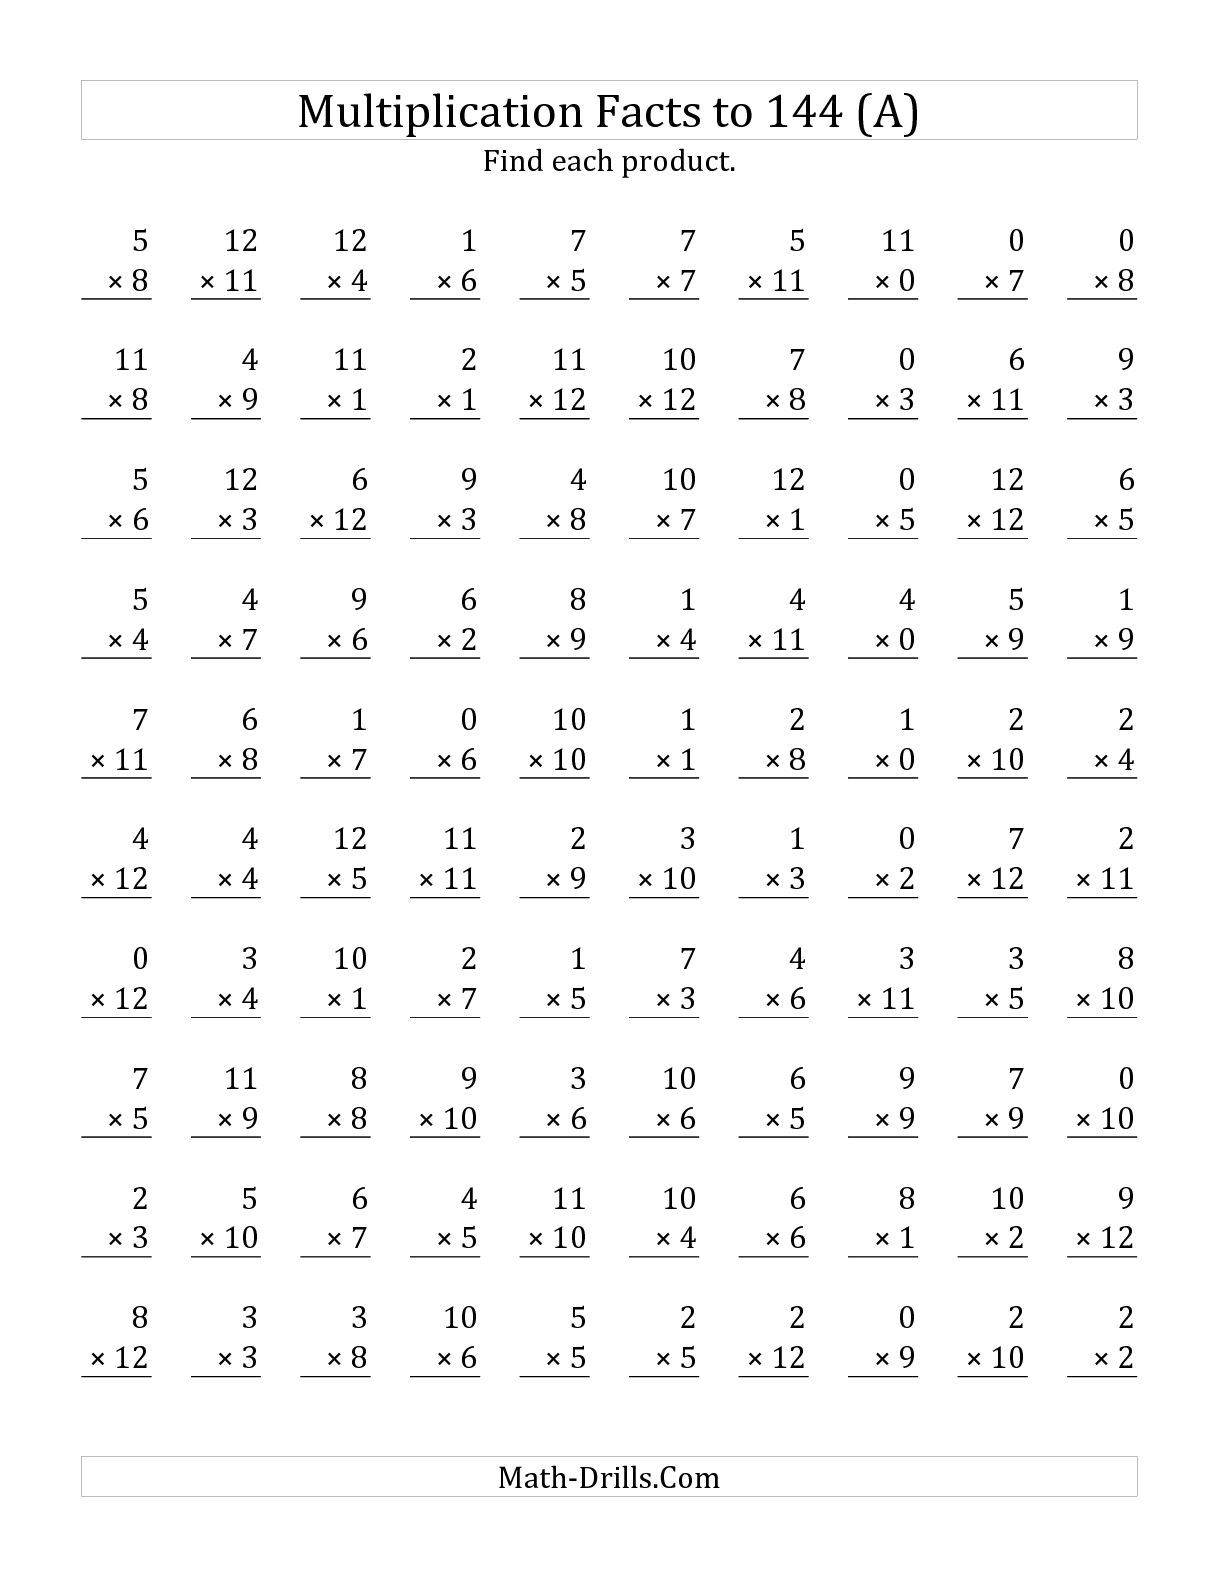 Worksheets Math Multiplication Worksheets the multiplication facts to 144 including zeros a math worksheet from page at drills com